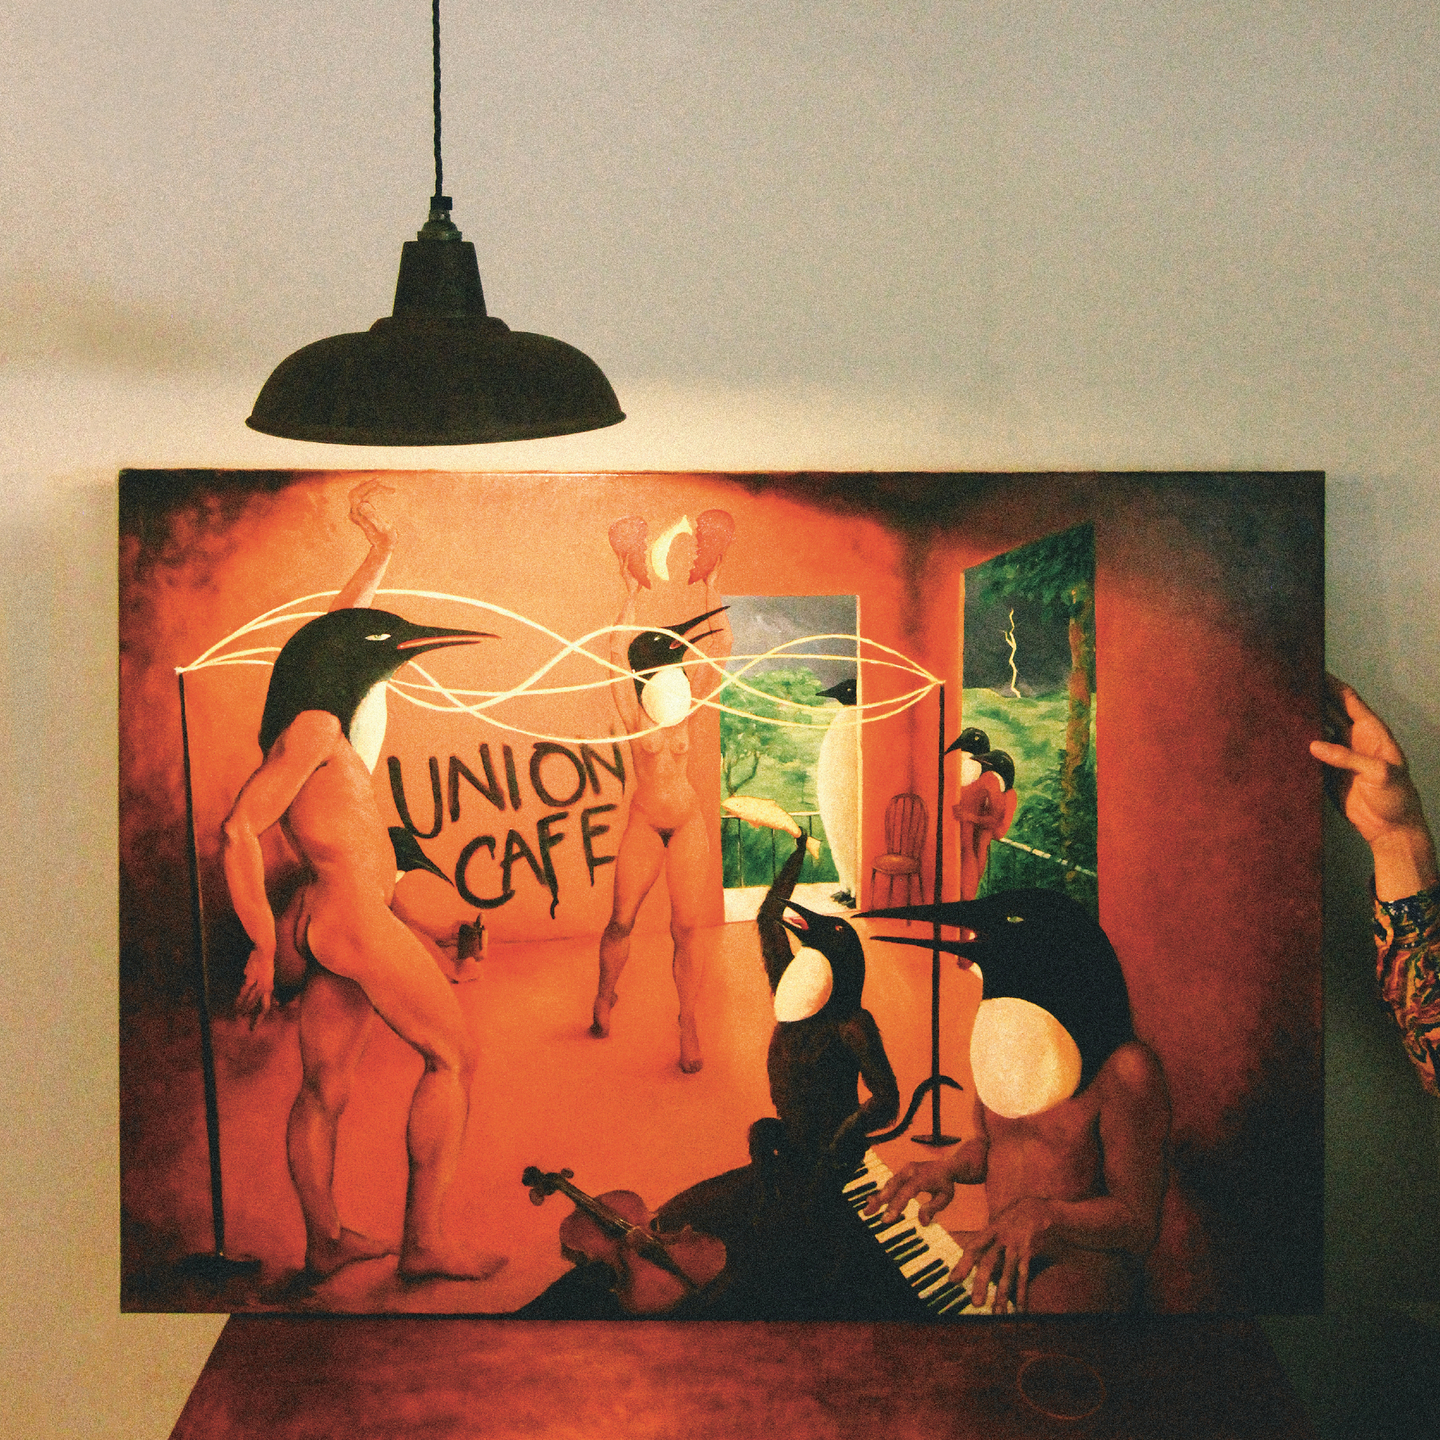 Union Cafe by Penguin Cafe Orchestra - Releases - Erased Tapes